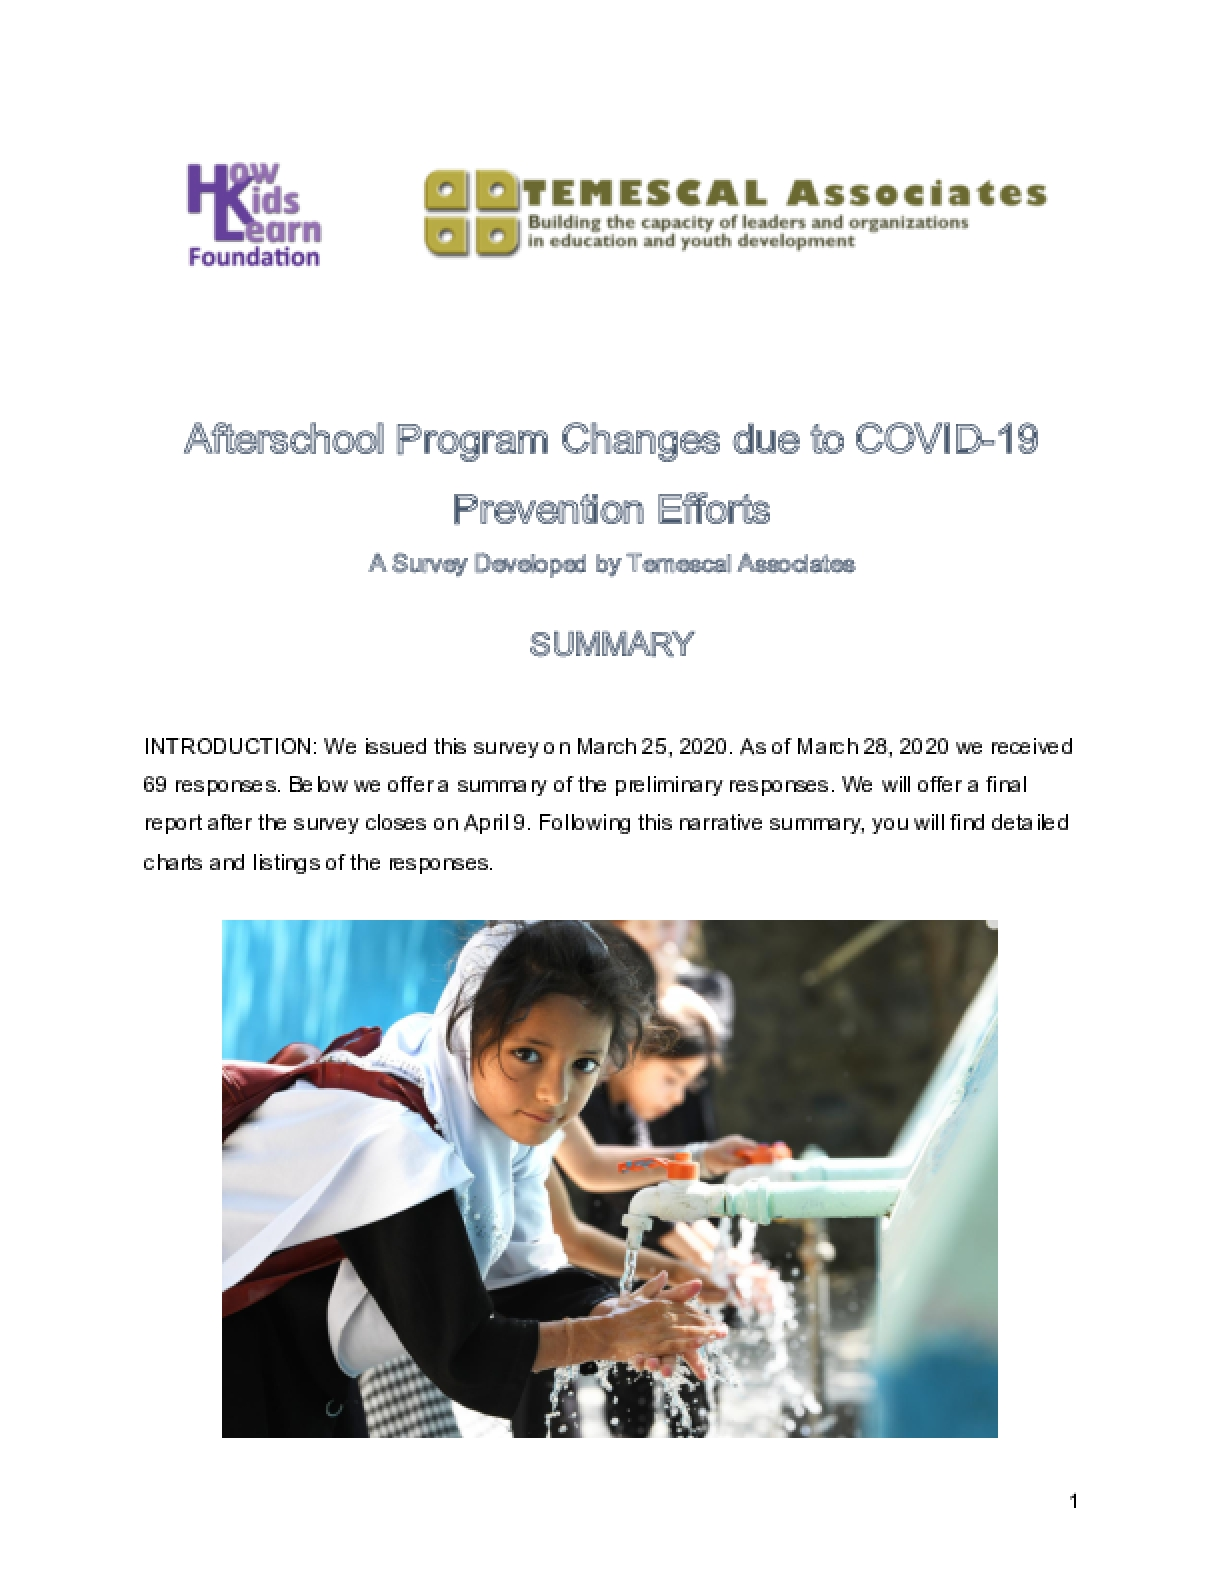 Preliminary Survey Results: Afterschool Program Changes due to COVID-19 Prevention Efforts